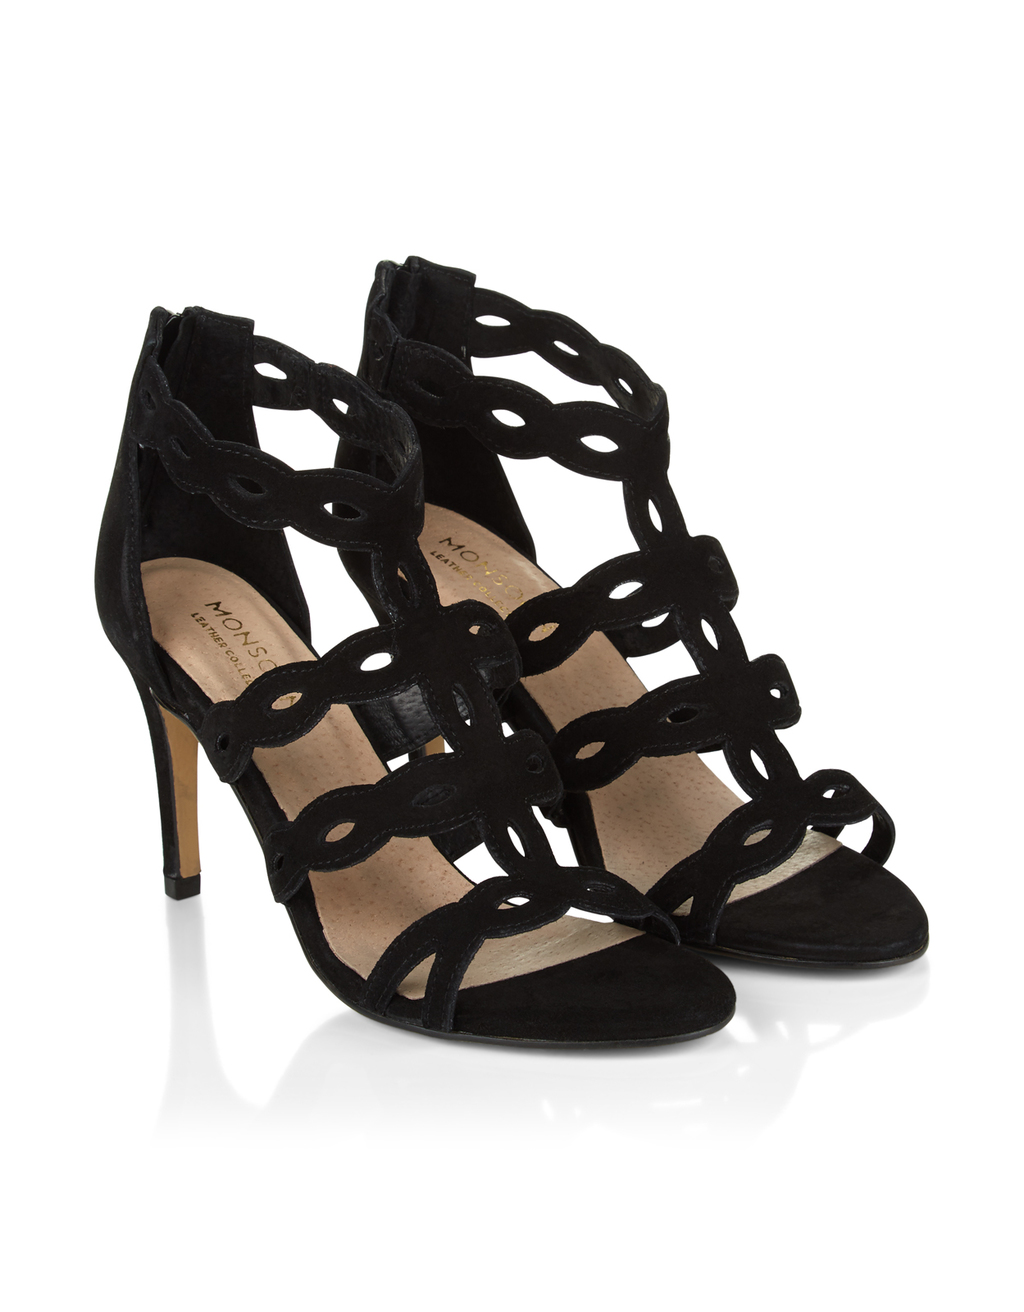 Lyra Lasercut Heeled Sandal - predominant colour: black; occasions: evening, occasion; material: suede; heel height: high; ankle detail: ankle strap; heel: stiletto; toe: open toe/peeptoe; style: strappy; finish: plain; pattern: plain; season: s/s 2016; wardrobe: event